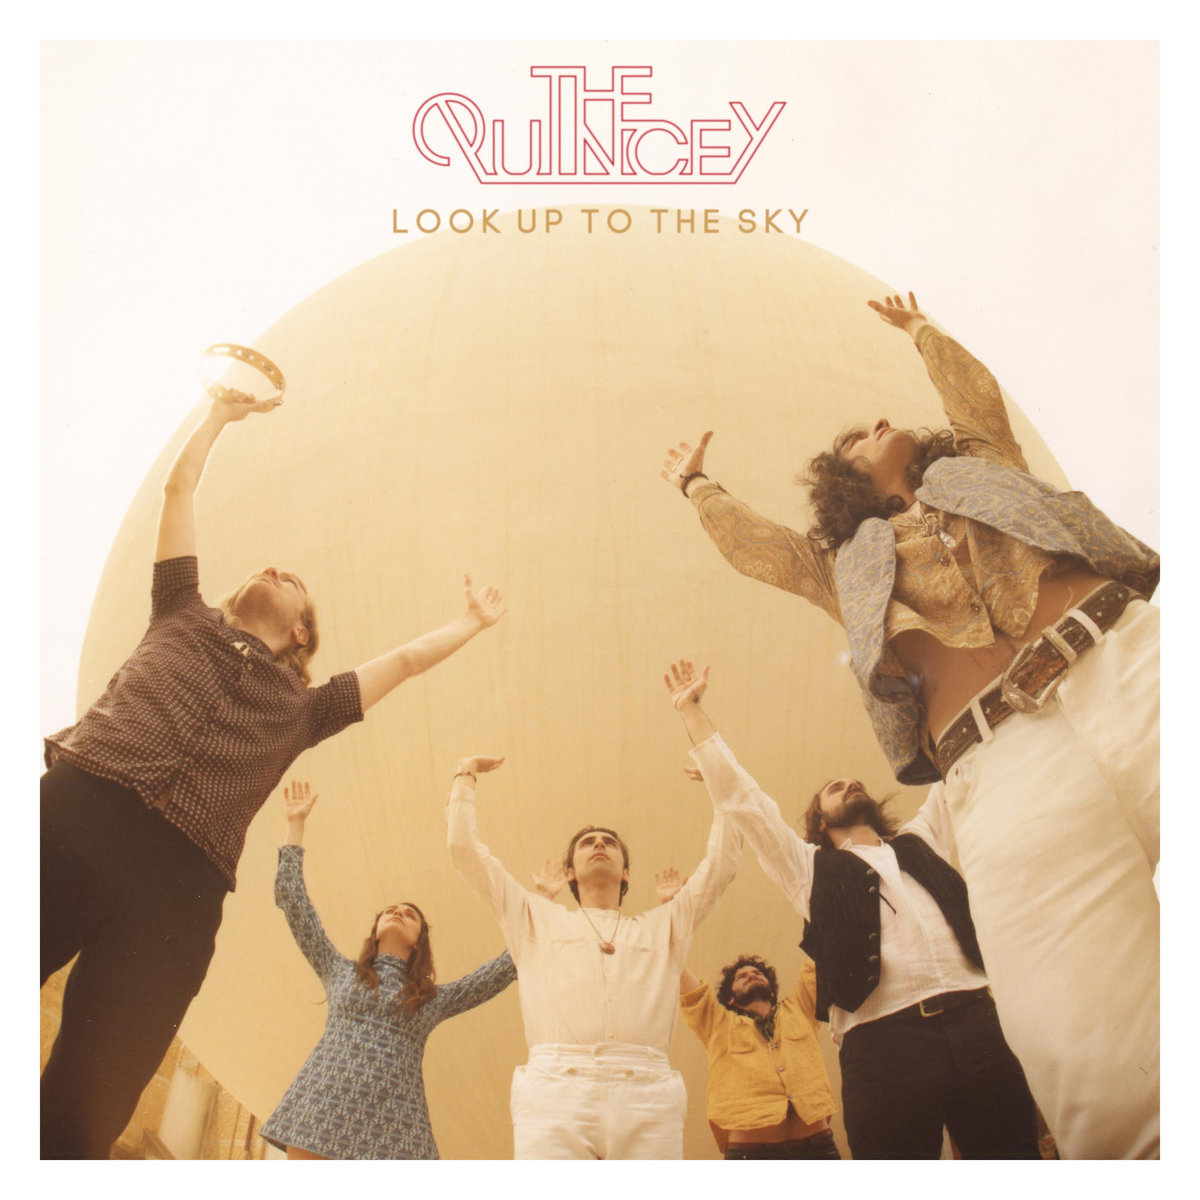 The Quincey - Look Up To The Sky